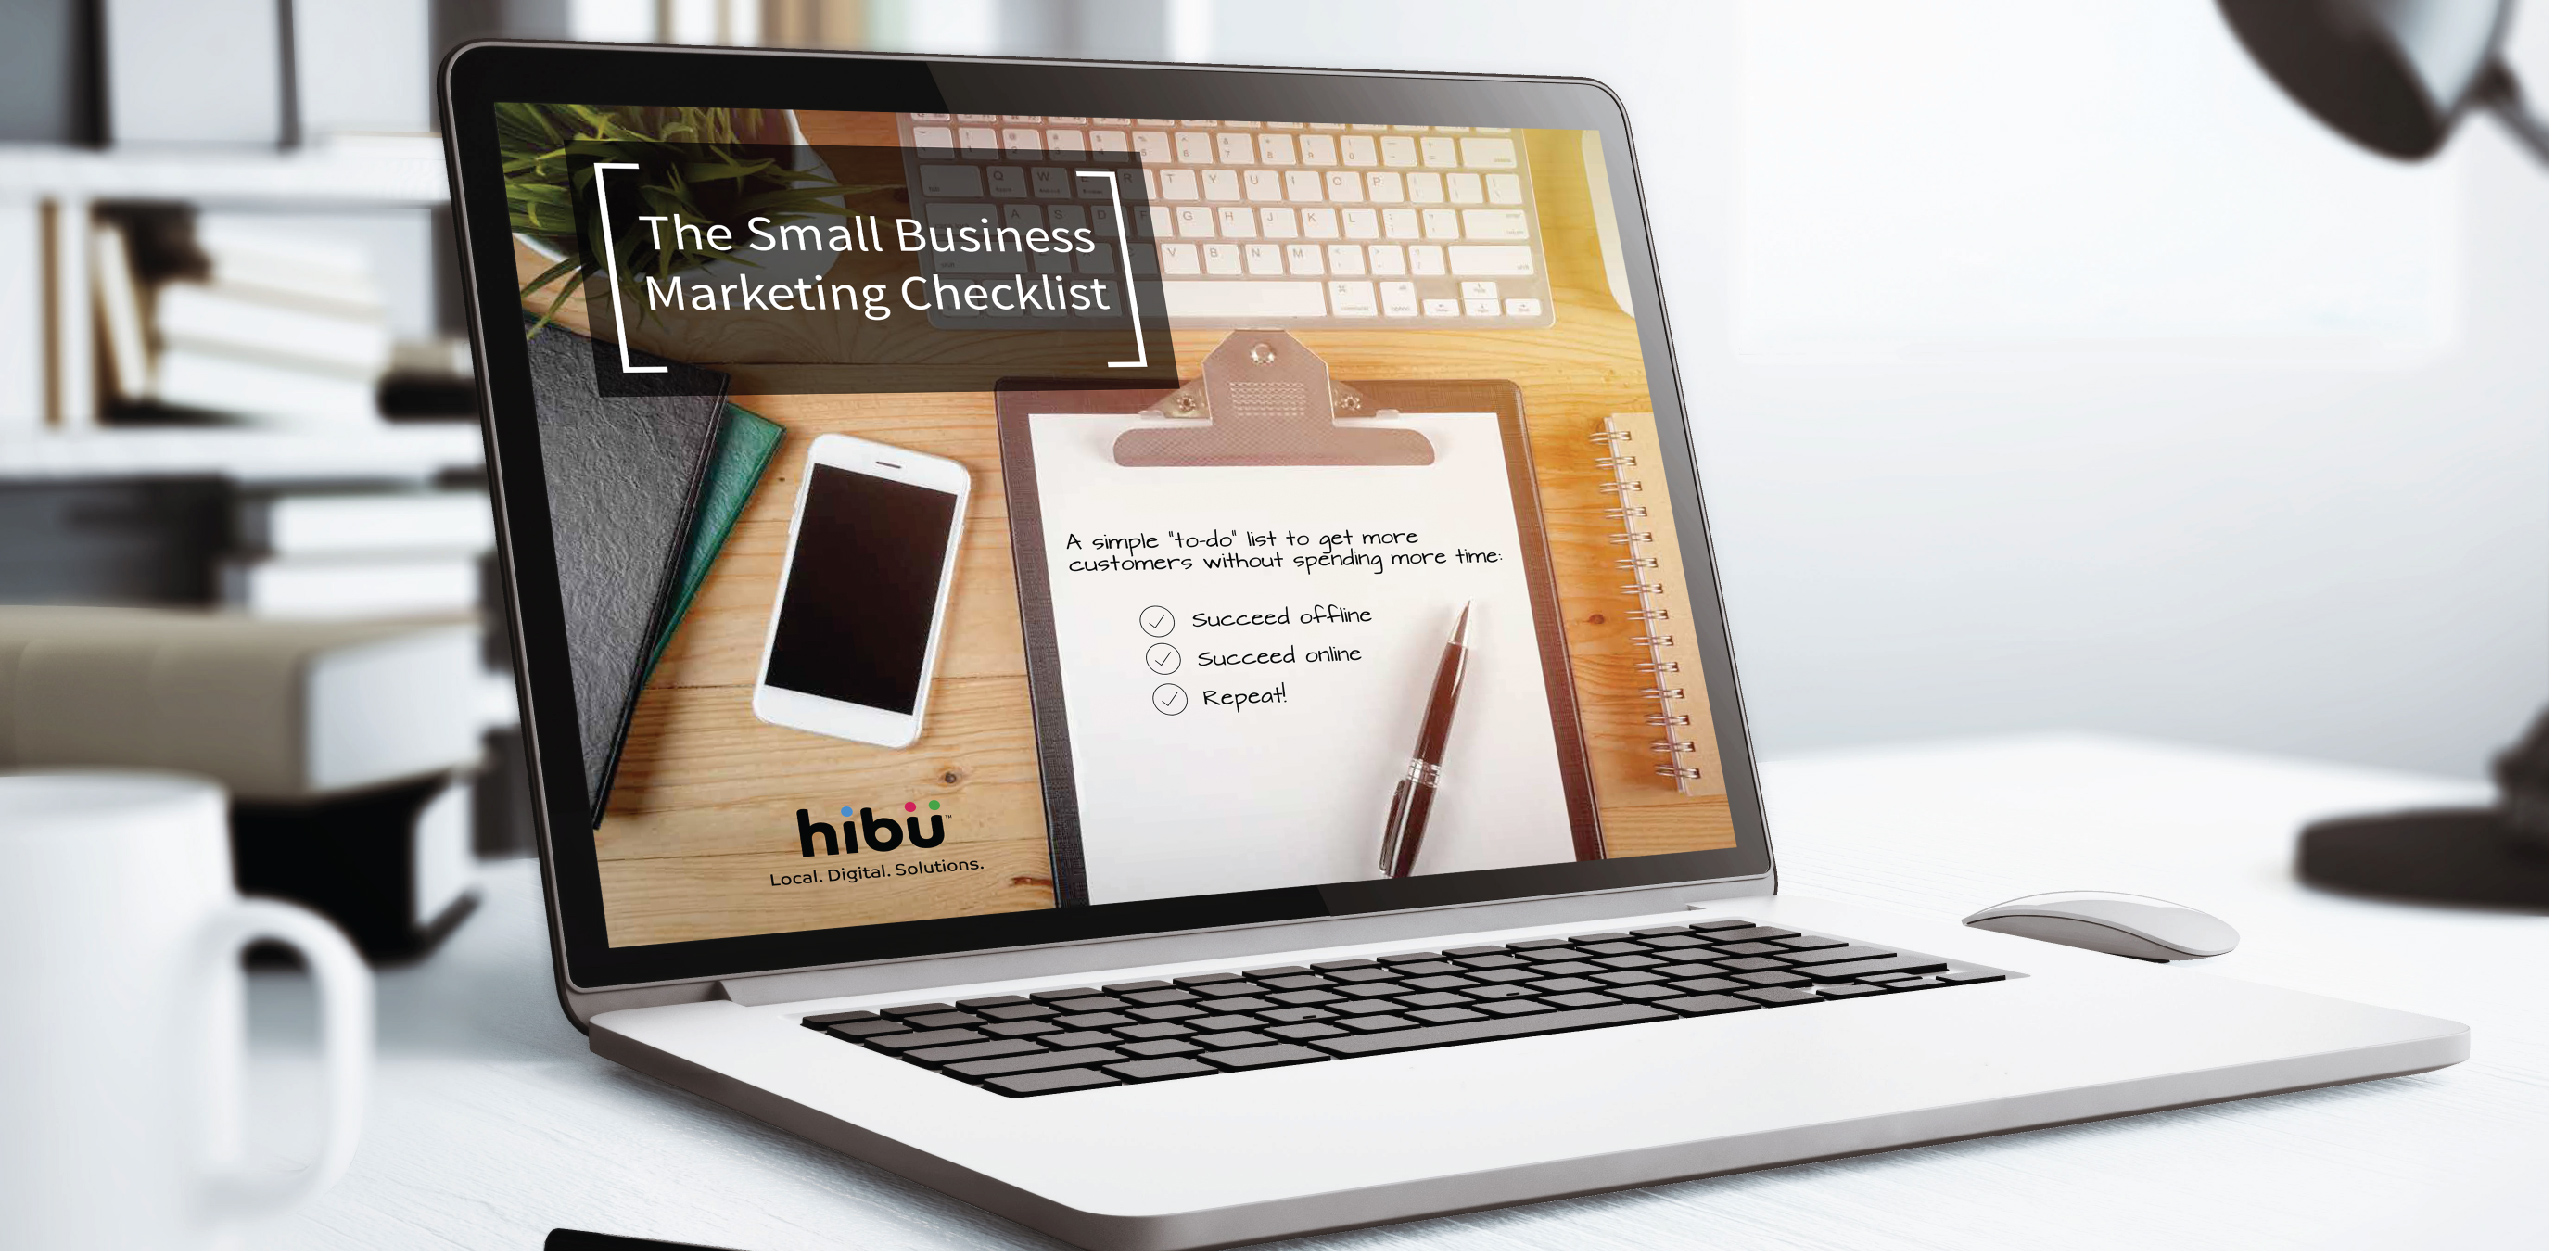 Hibu's Small Business Marketing Checklist on a laptop in an office